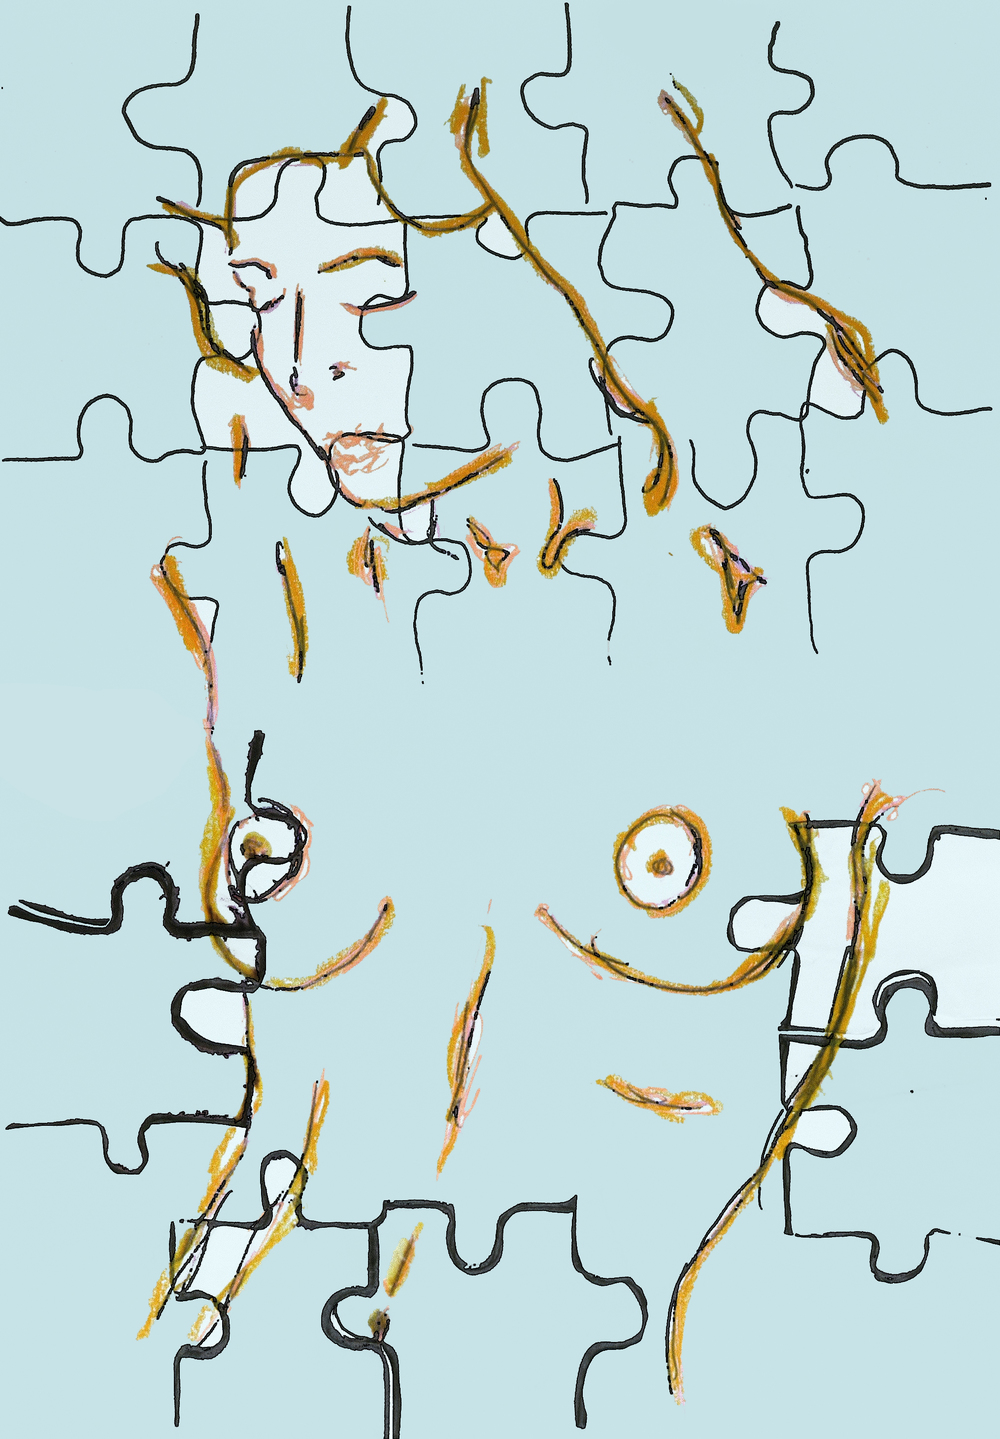 womanpuzzle.jpeg